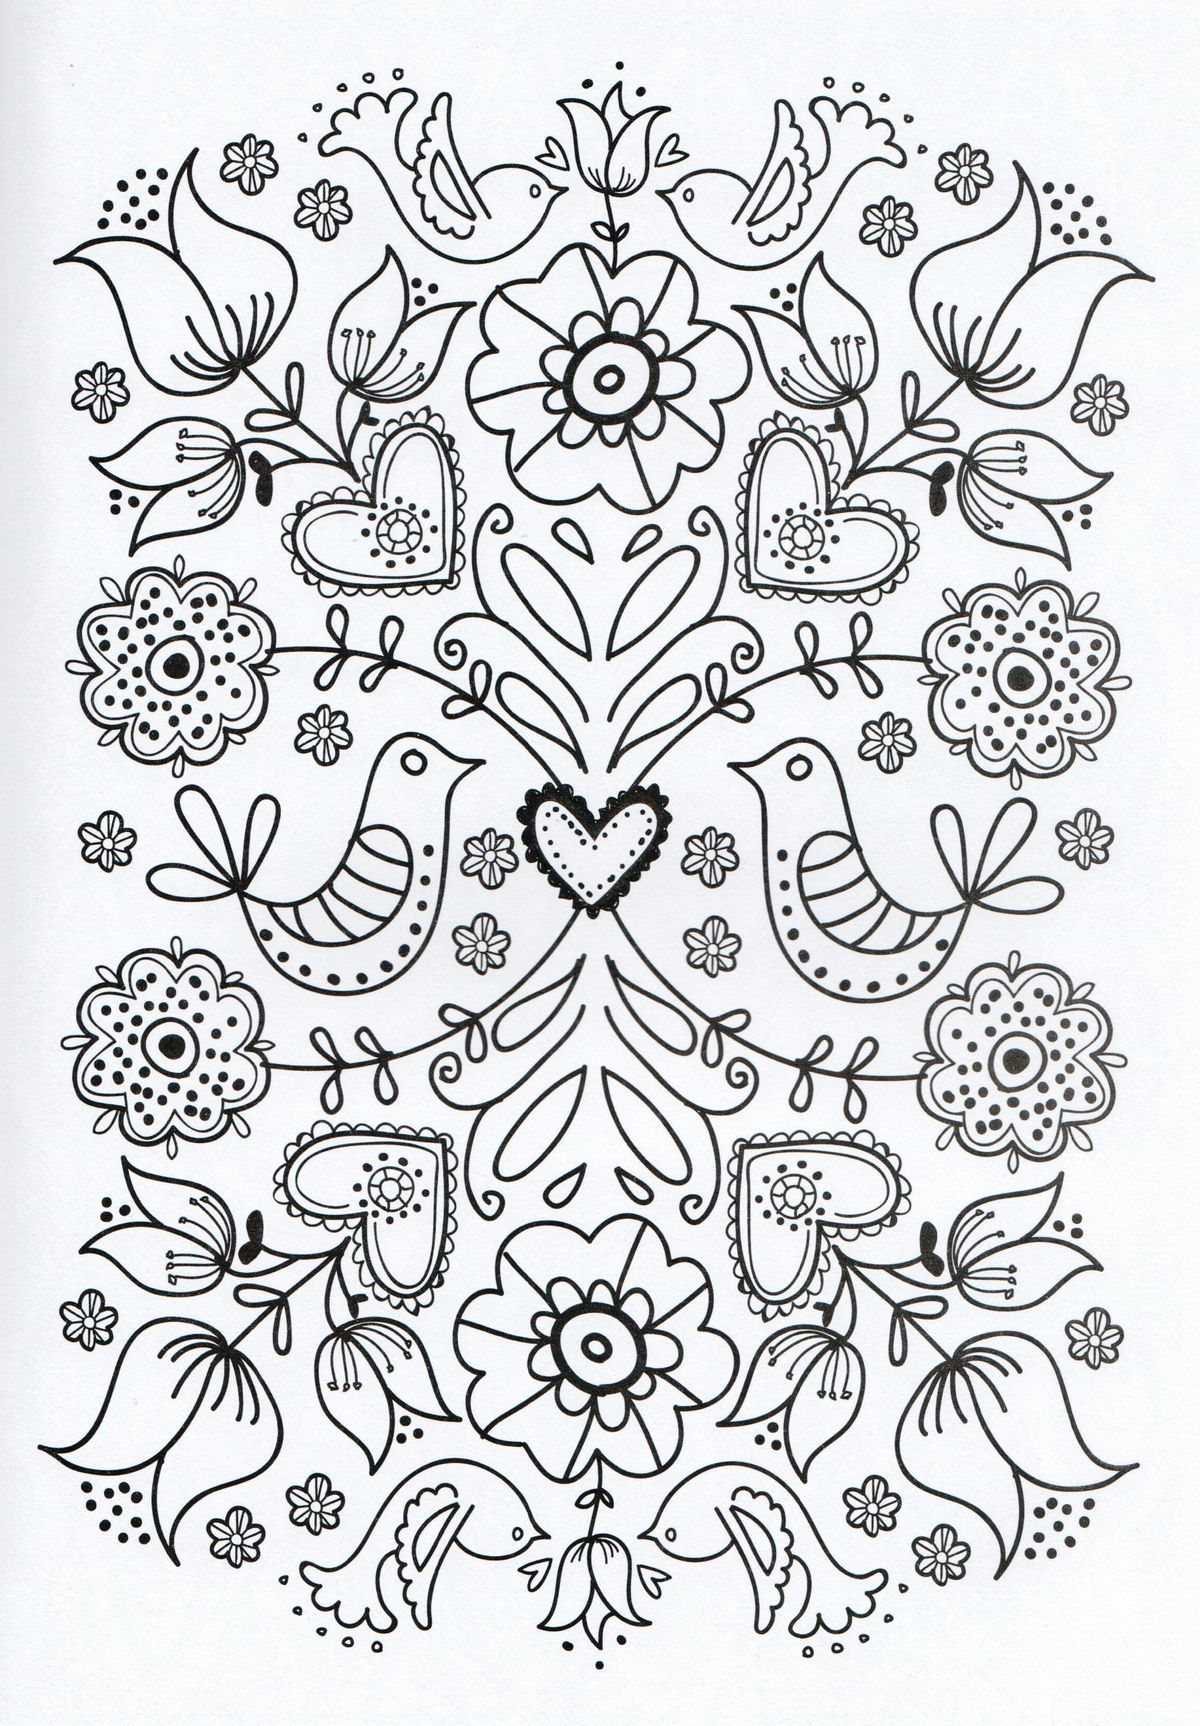 Pin By Lita On Diy Pinterest Coloring Pages Adult Coloring